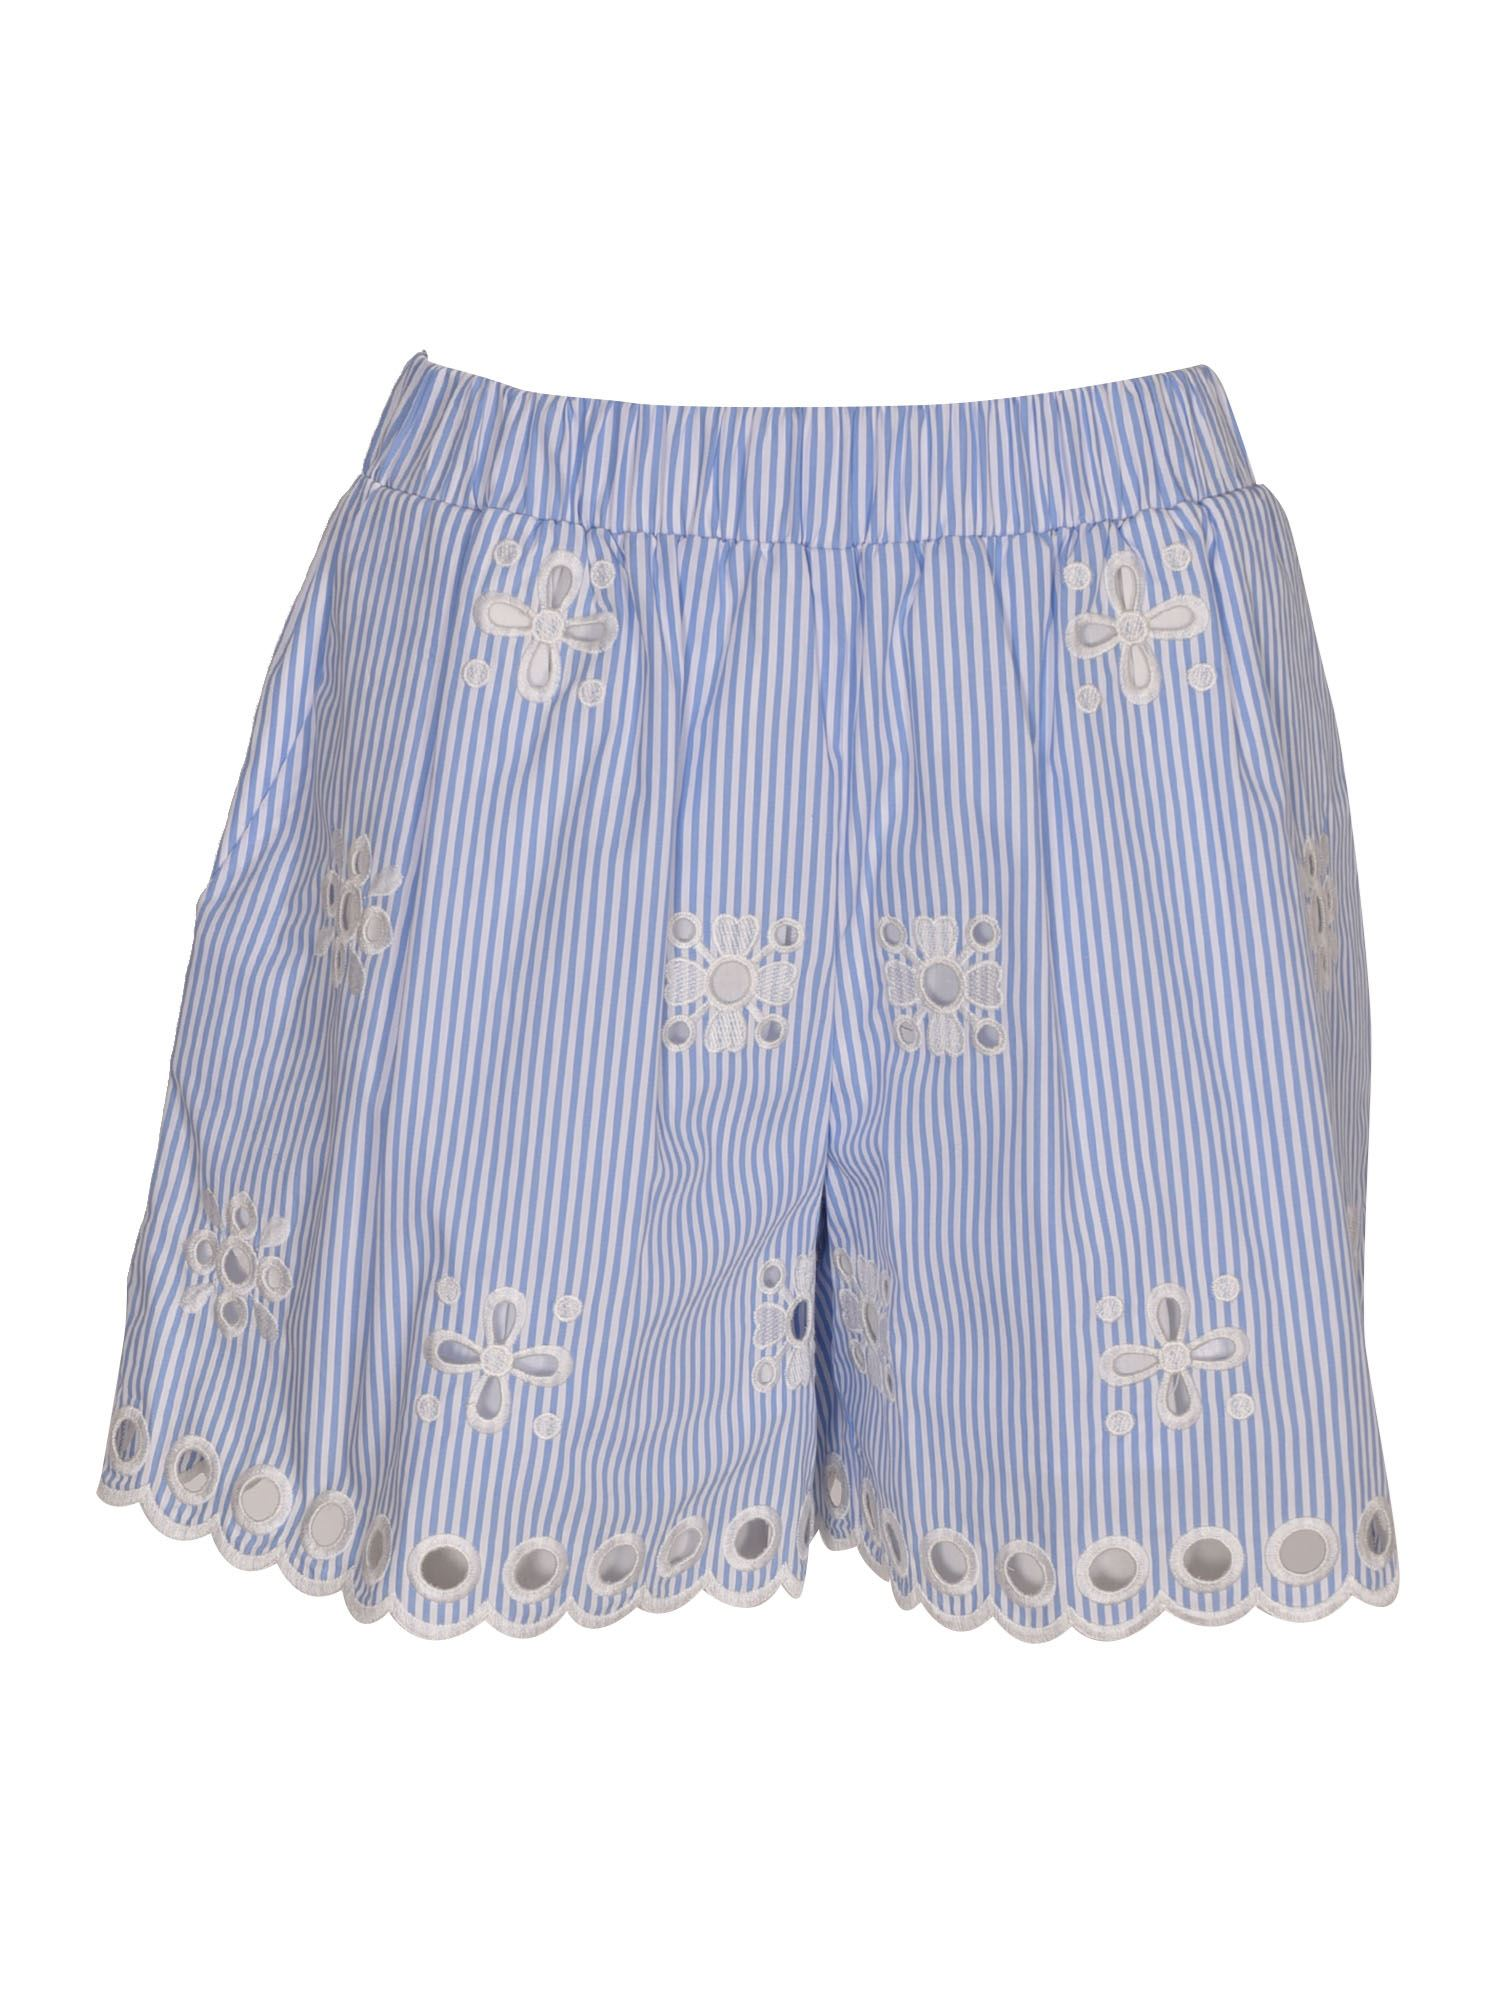 Red Valentino Cottons EMBROIDERED STRIPED SHORTS IN WHITE AND LIGHT BLUE